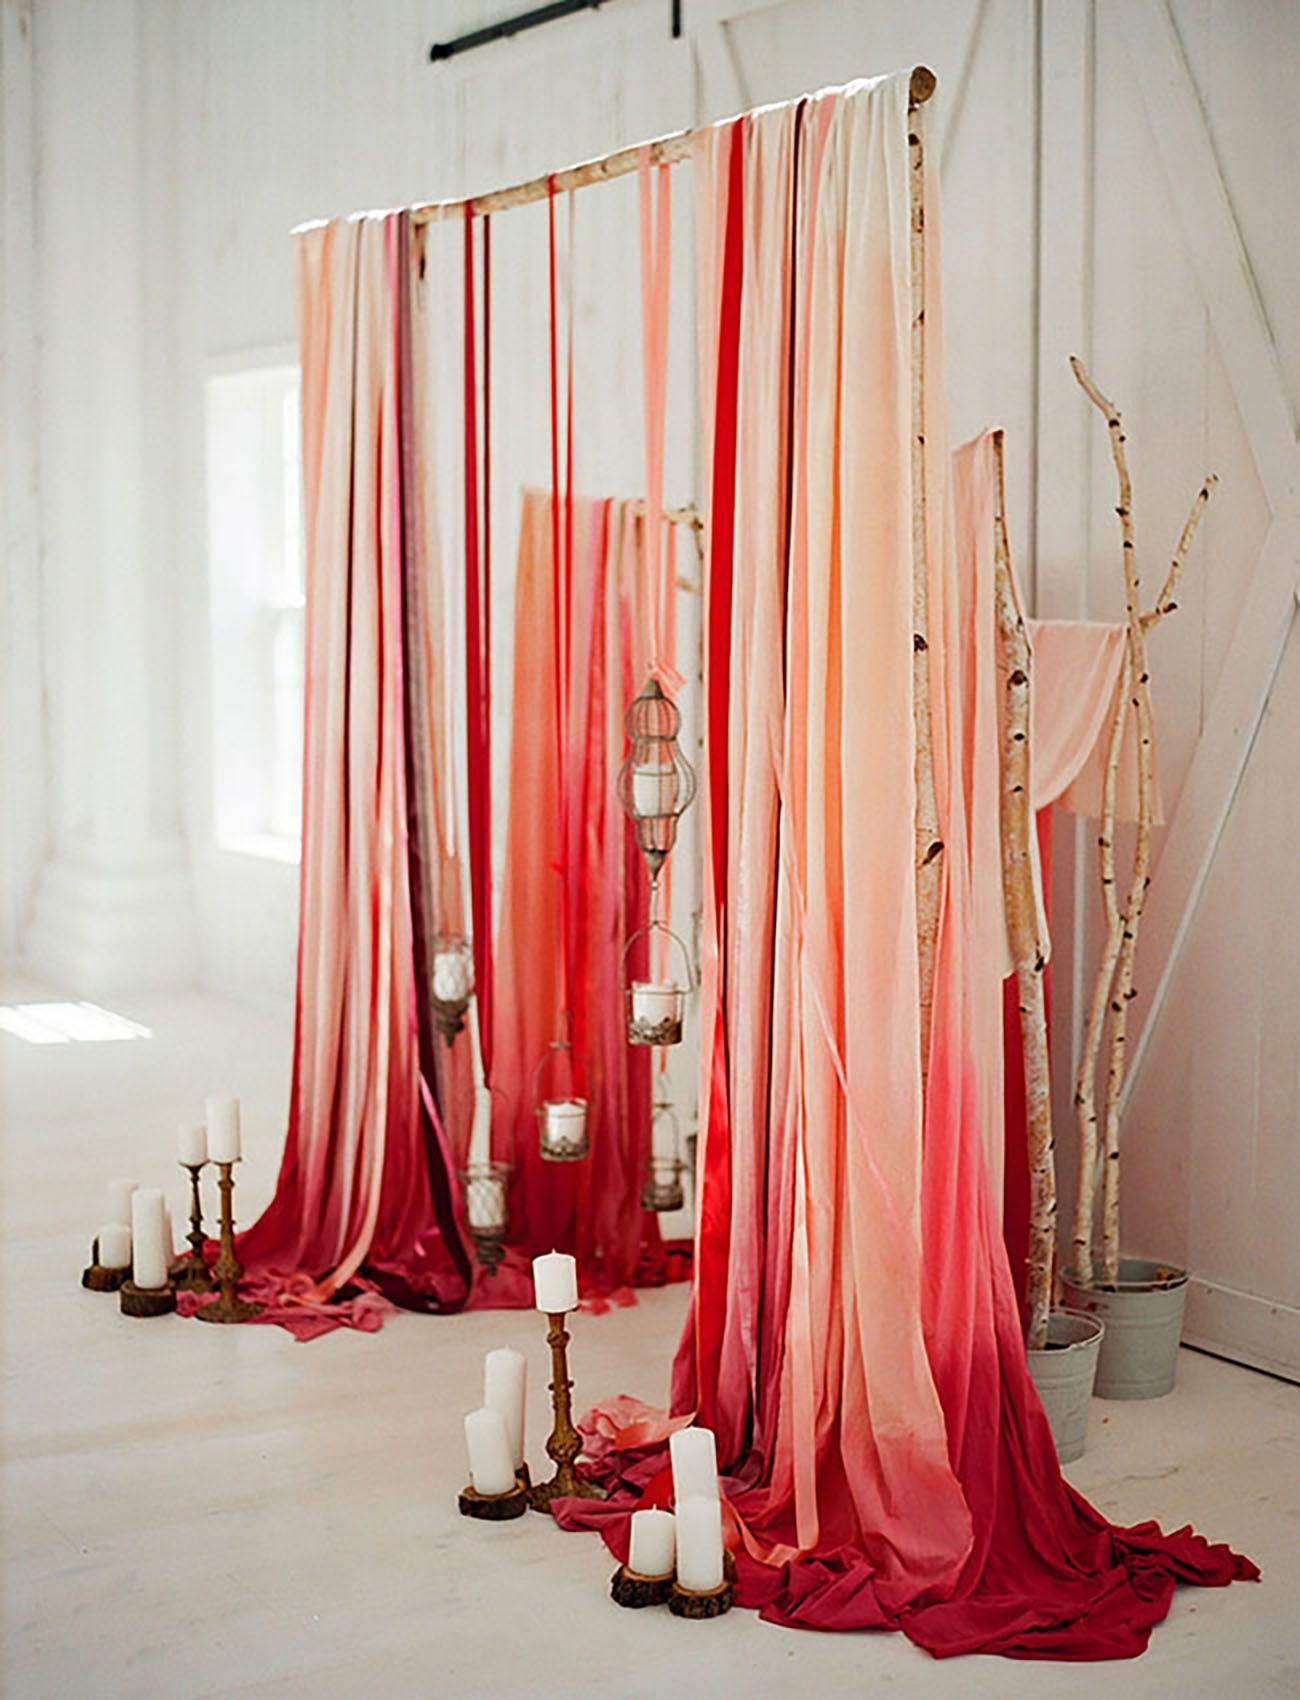 10 Creative Ways To Use Fabric In Your Wedding Green Wedding Shoes Cheap Wedding Decorations Wedding Backdrop Lights Light Backdrop